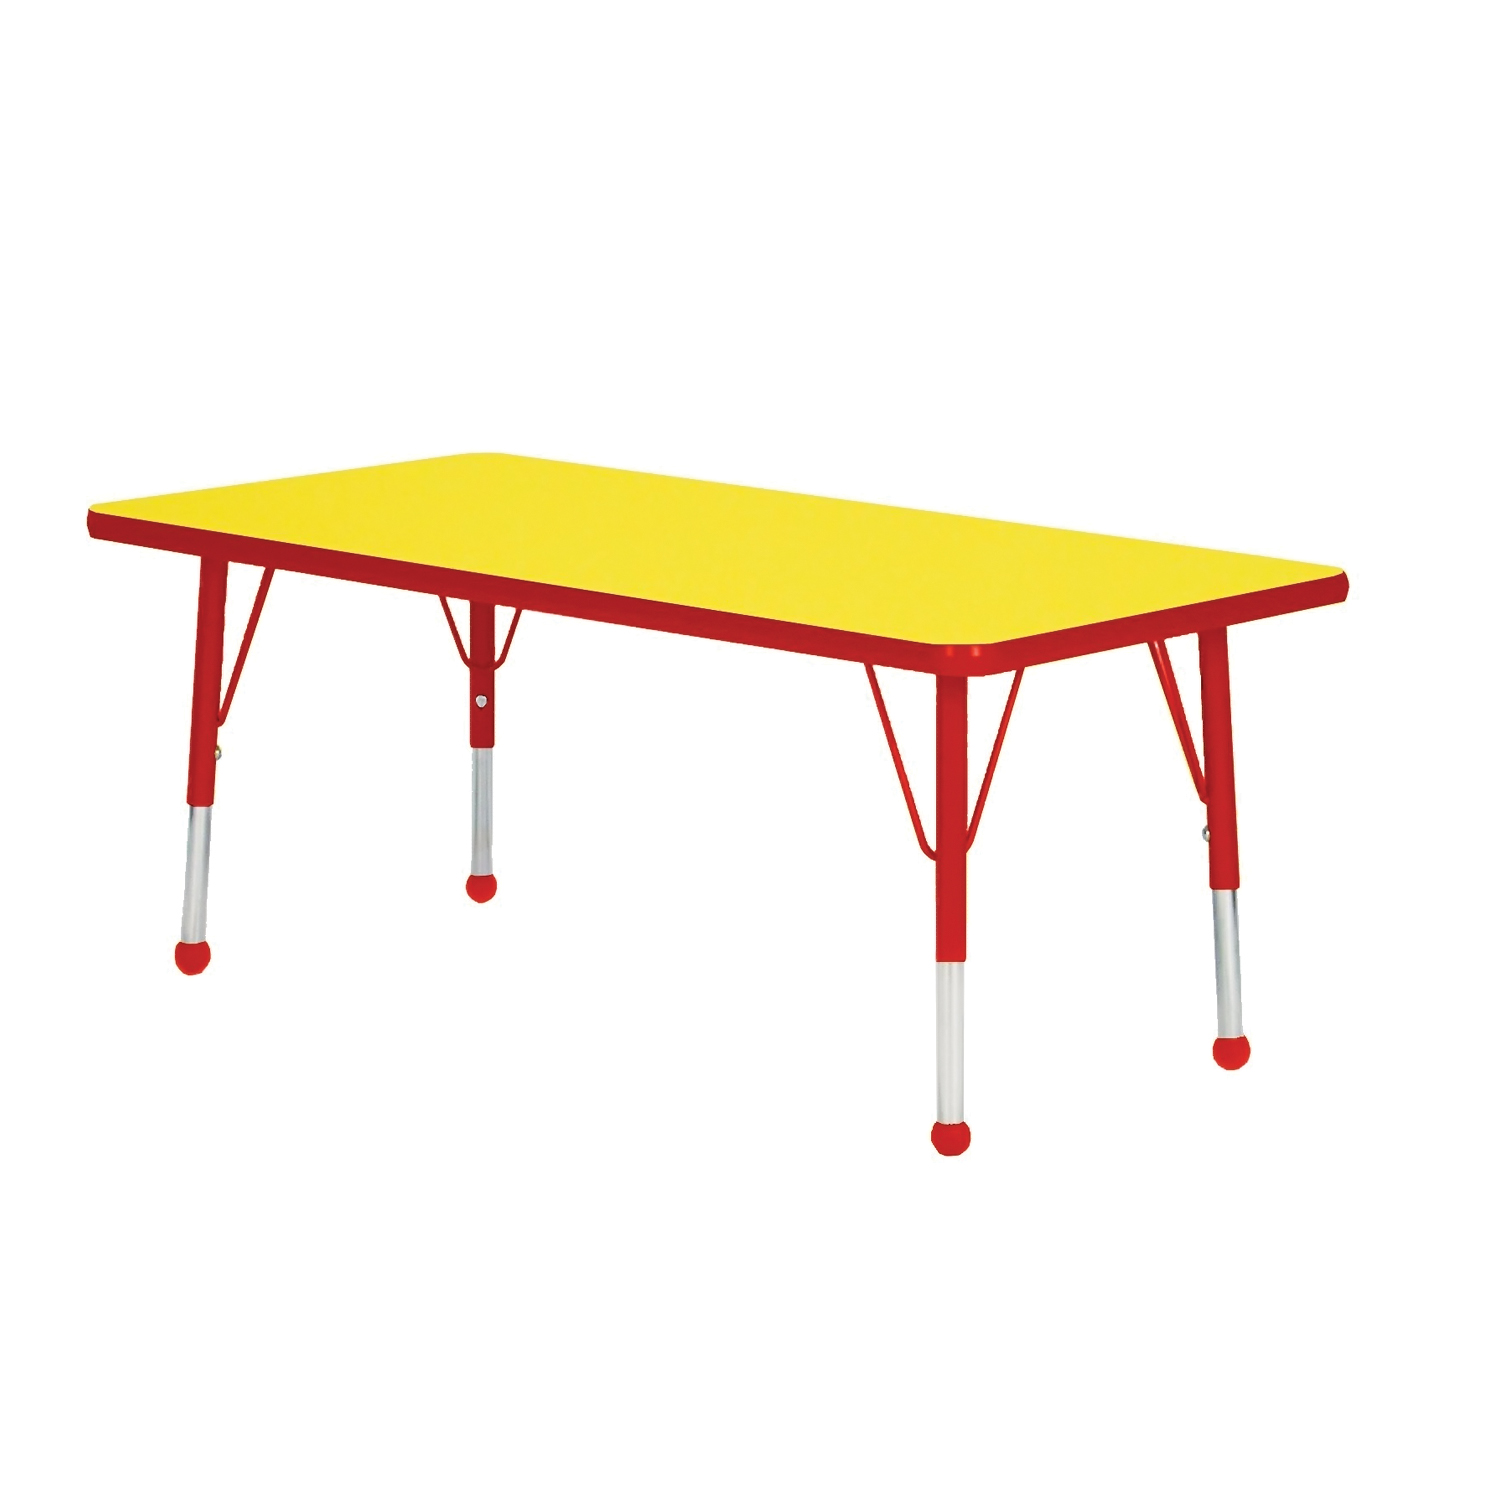 """Mahar Kids Classroom Play Activity Ball Glide Adjustable Red Edge Rectangle Table Yellow Toddler Leg Height 16""""-24"""" at Sears.com"""